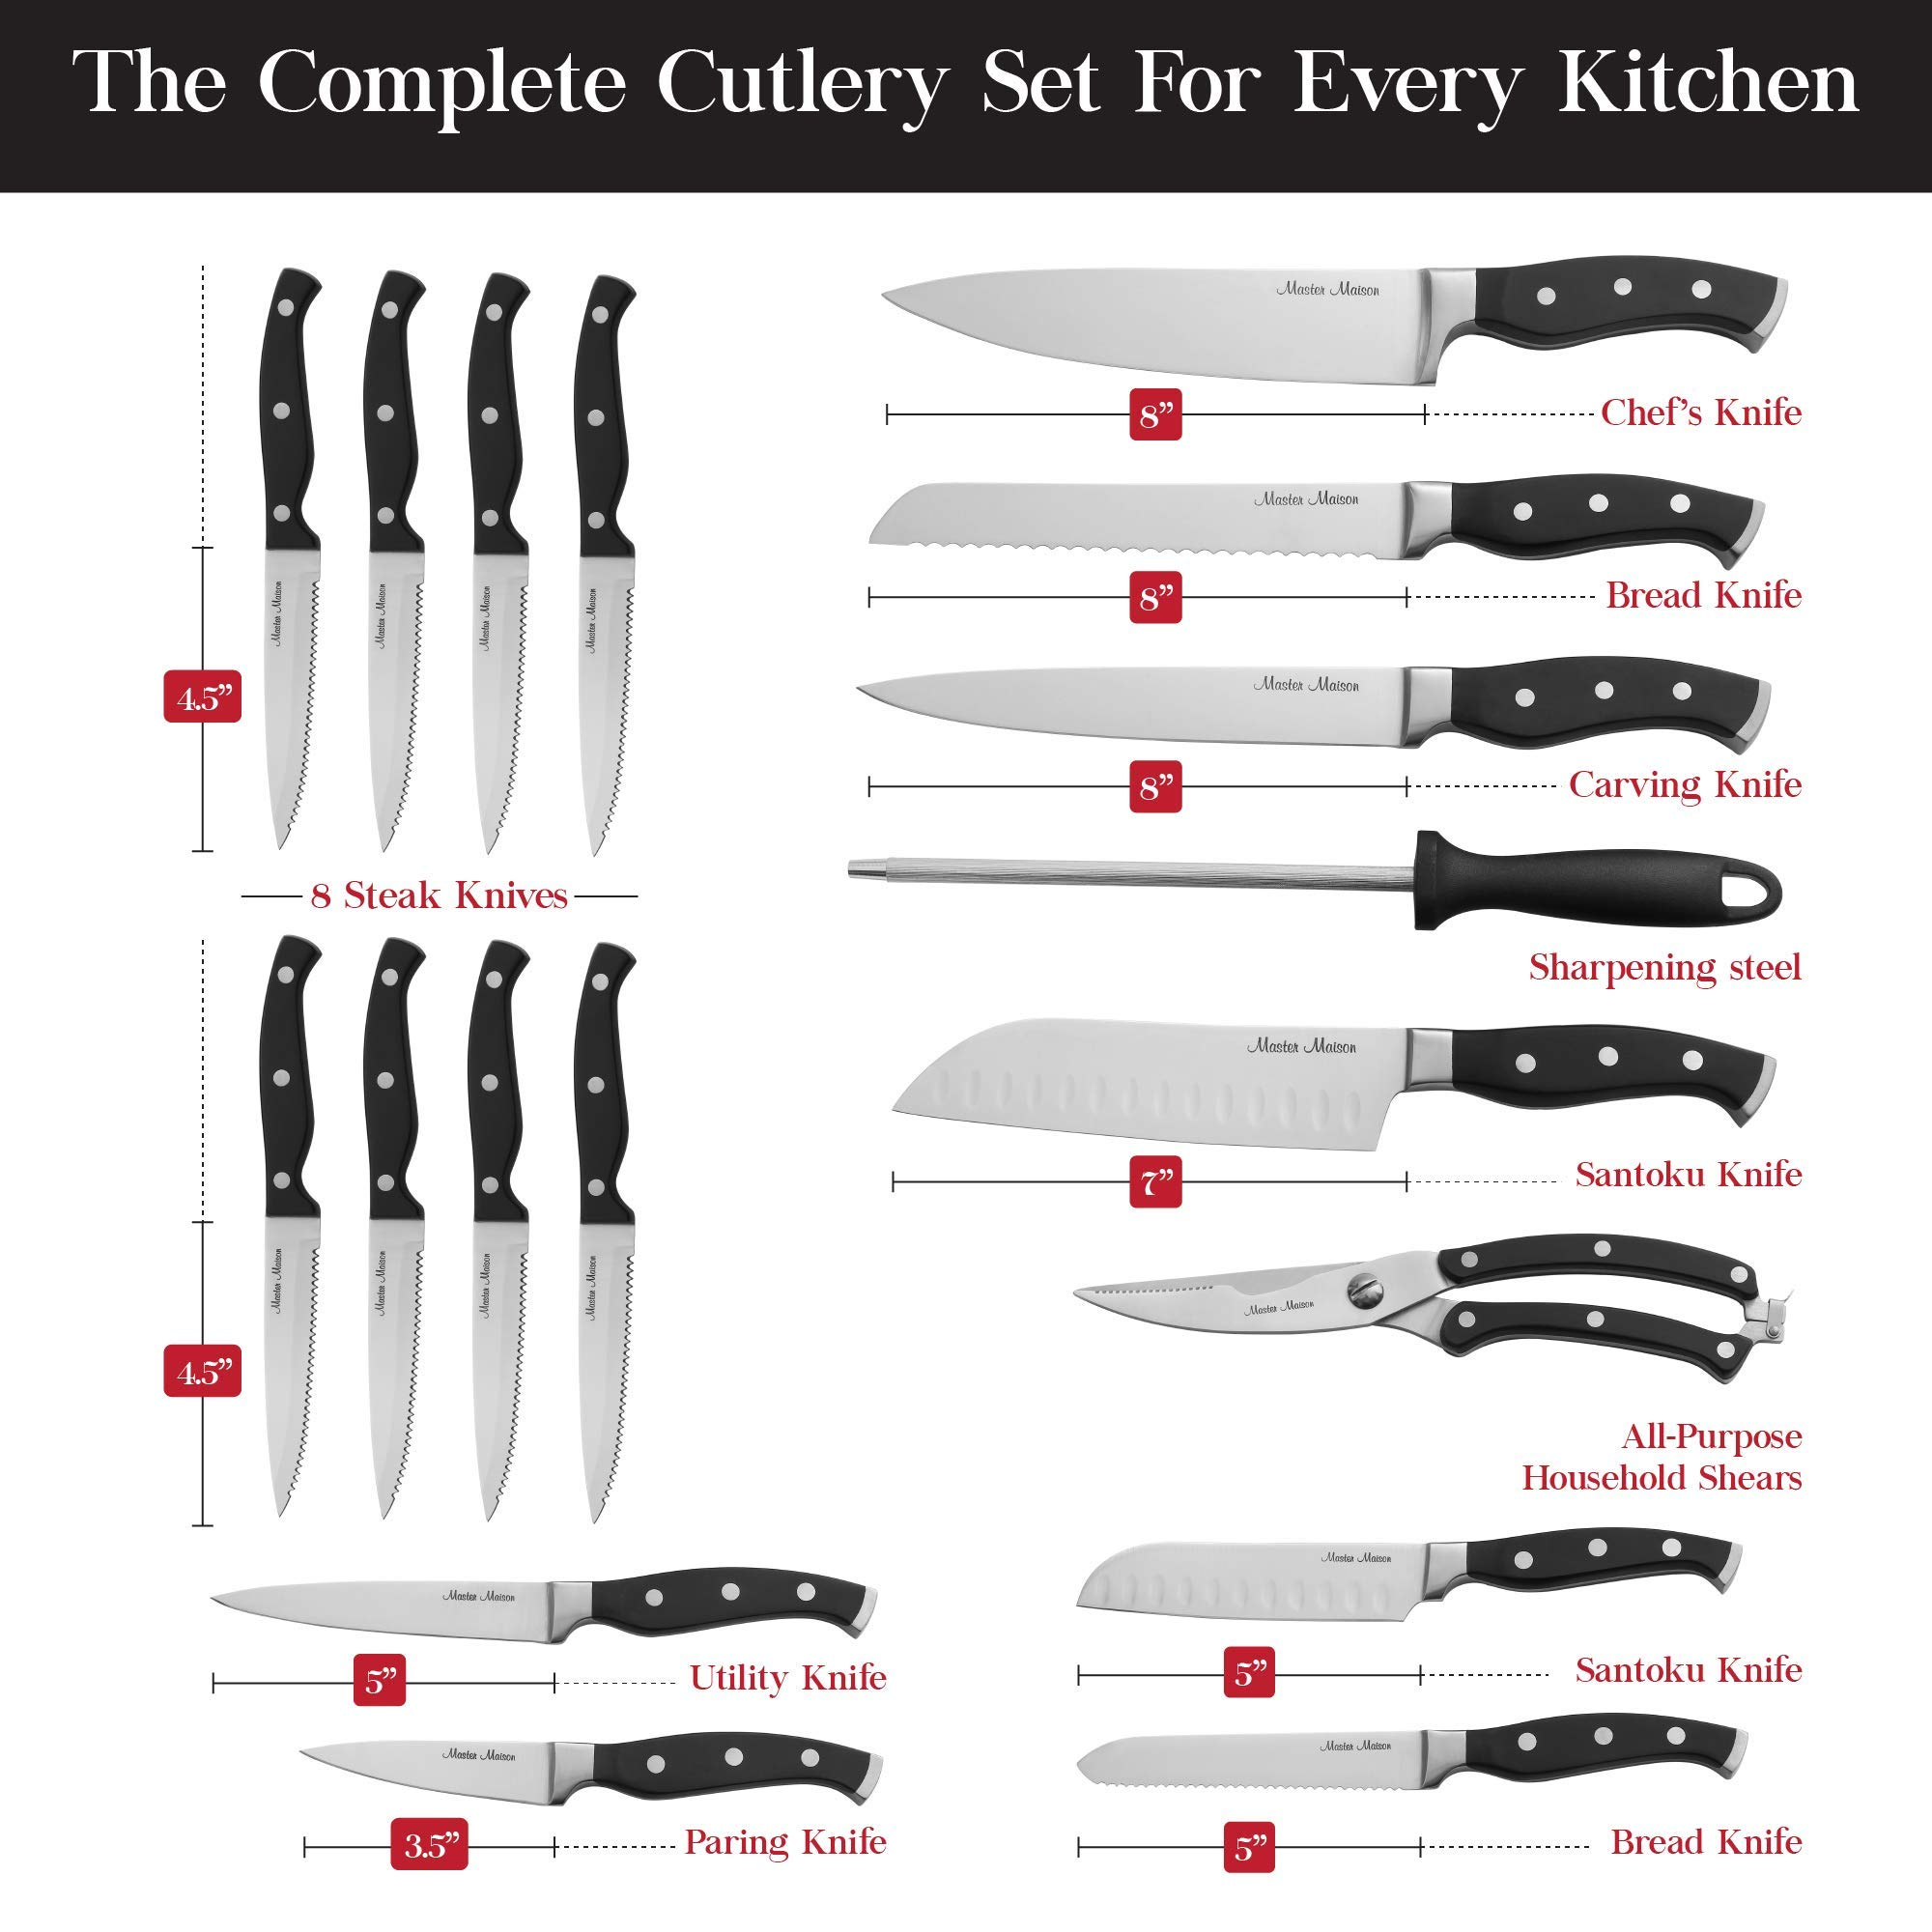 19-Piece Premium Kitchen Knife Set With Wooden Block | Master Maison German Stainless Steel Cutlery With Knife Sharpener & 8 Steak Knives by Master Maison (Image #3)